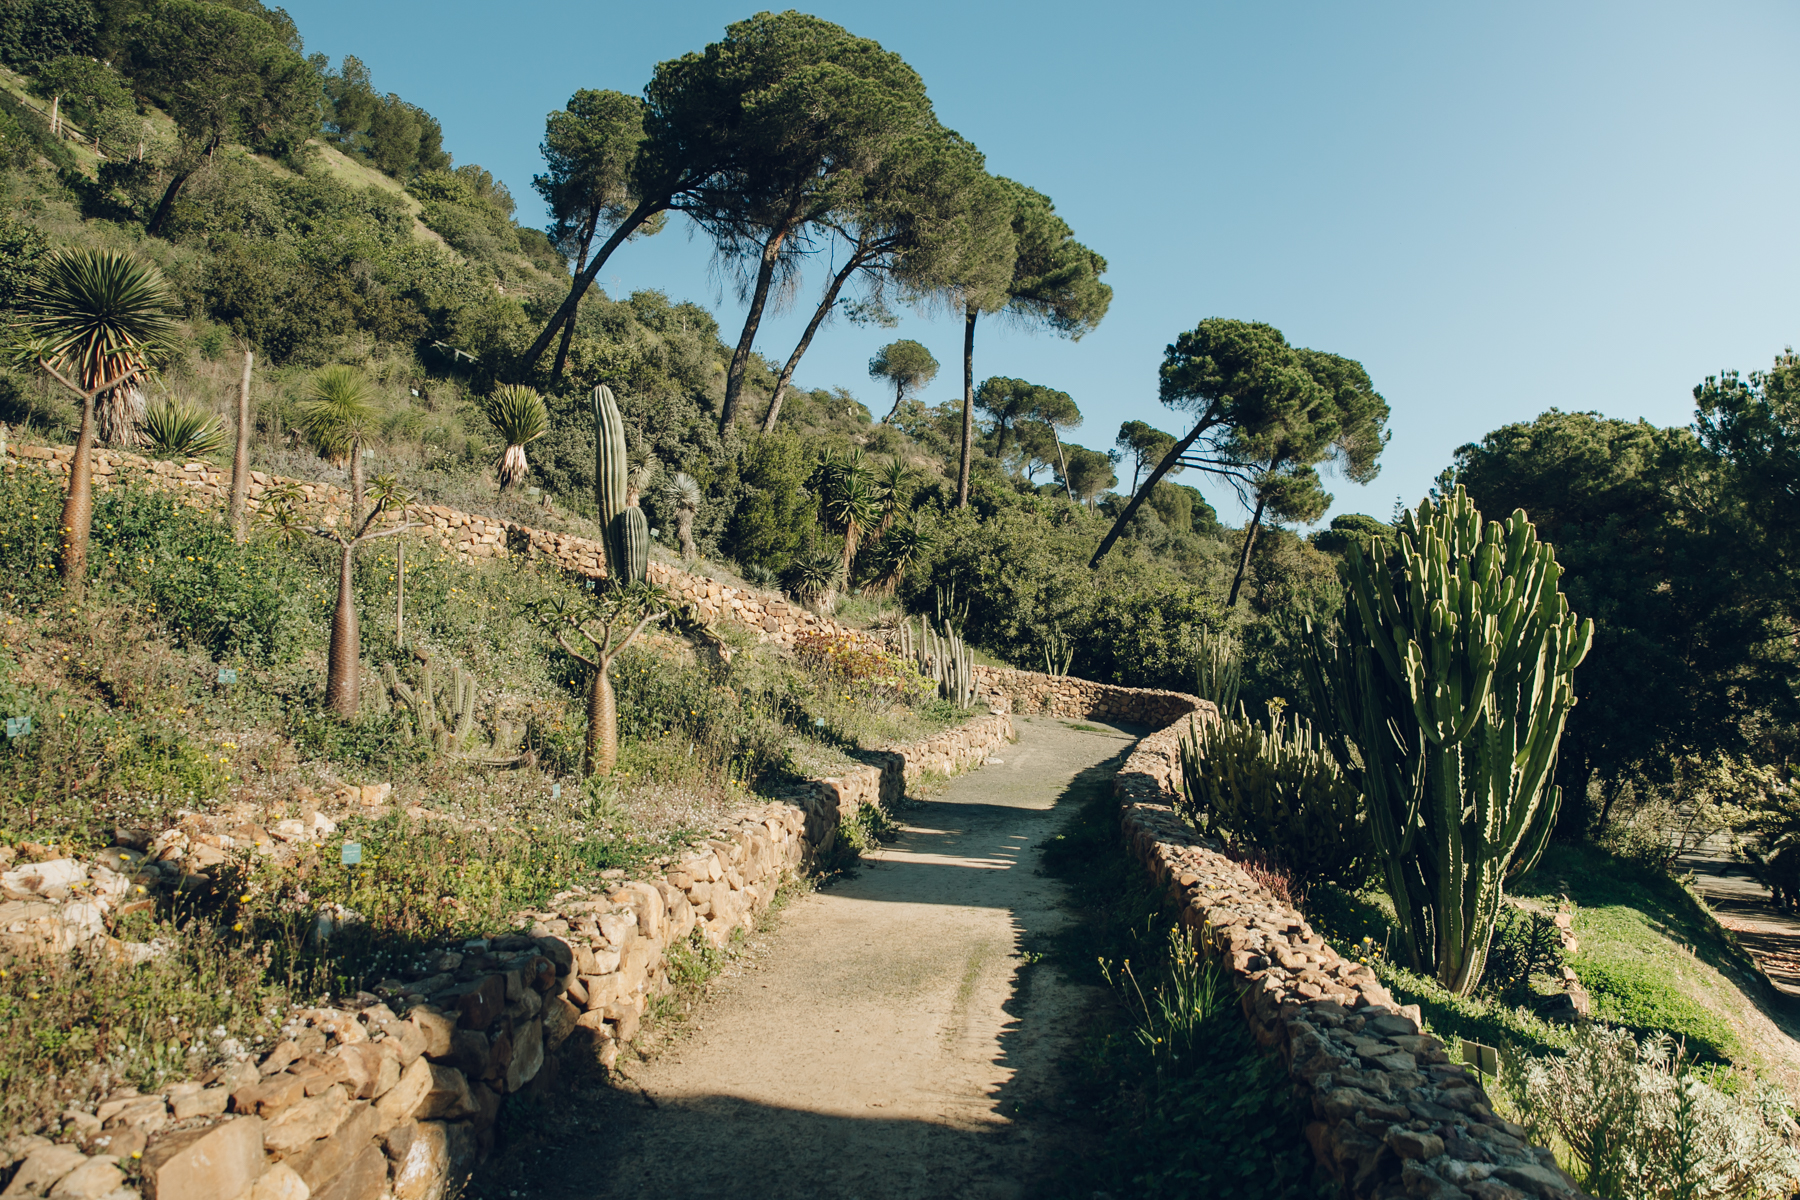 Cacti in Malaga Botanical Gardens, Spain.